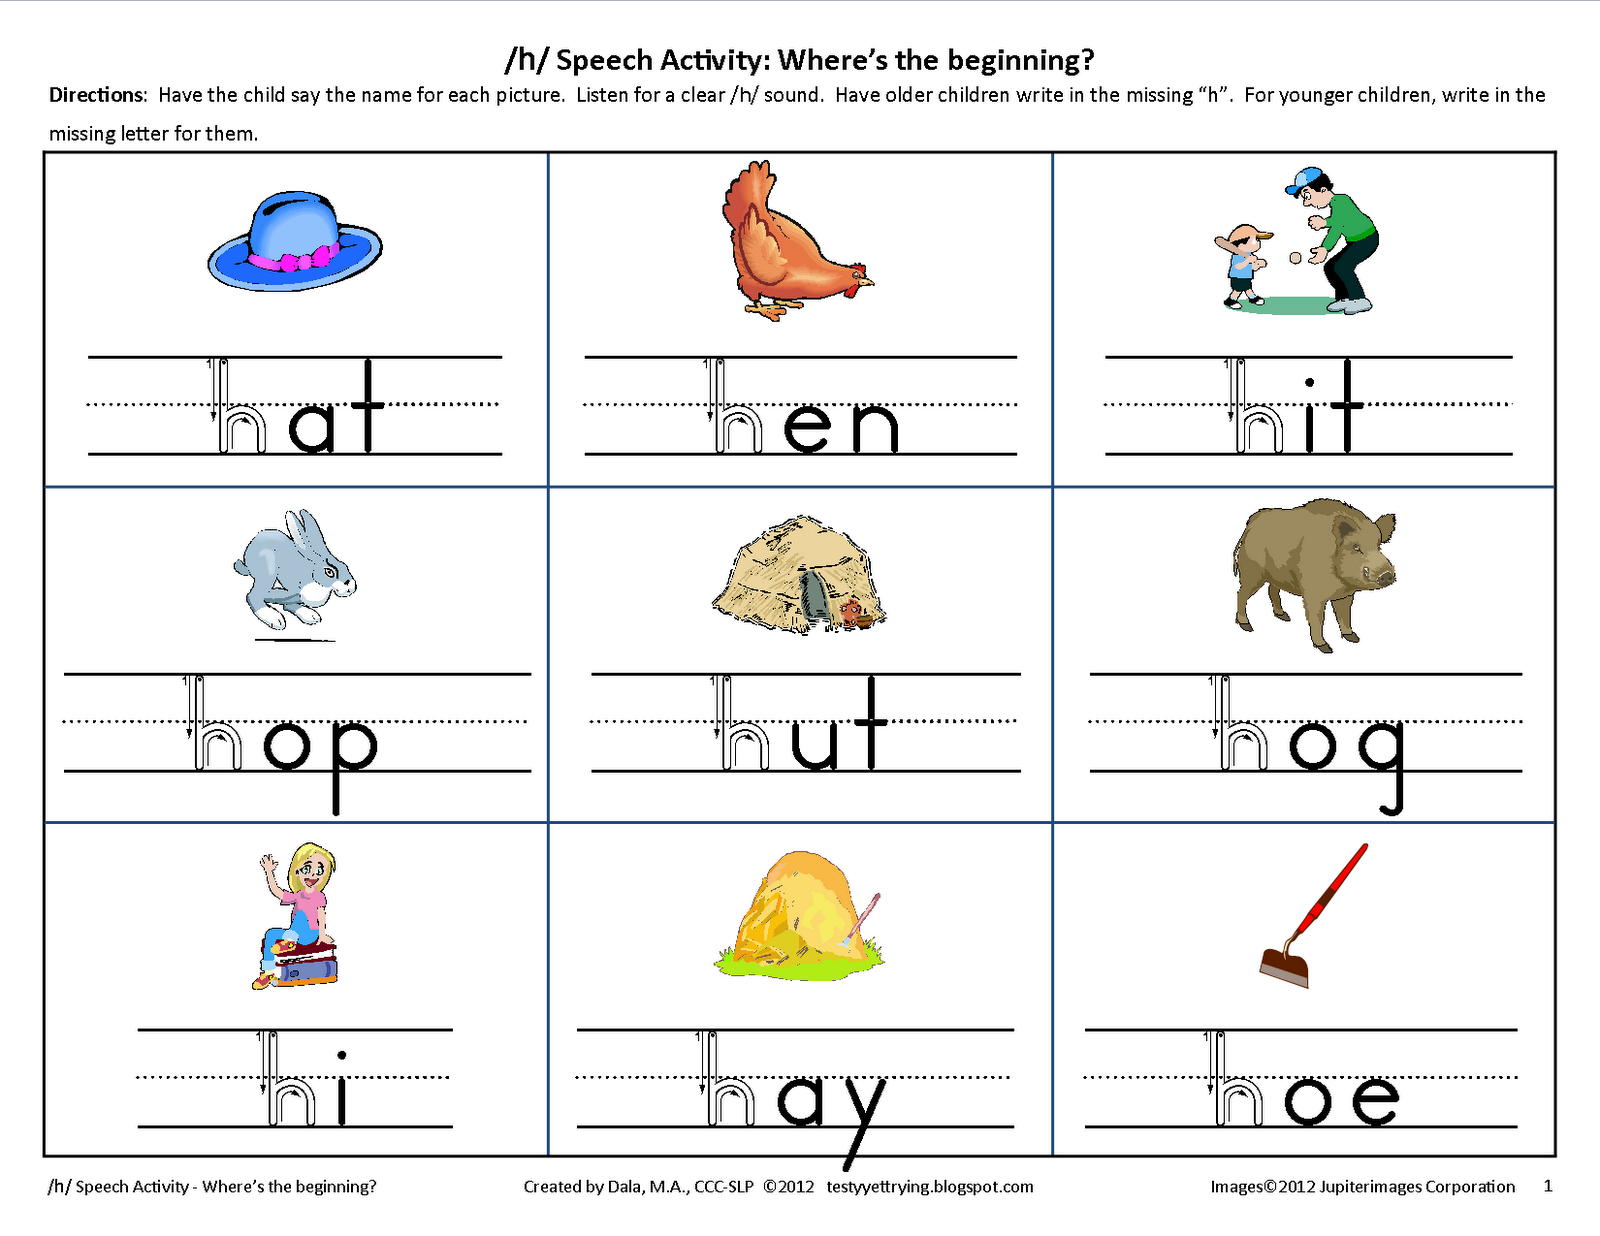 Weirdmailus  Surprising Testy Yet Trying Initial H Speech Worksheet With Engaging Make Classroom Teachers Happy Reinforce Phonics And Handwriting And Practice Speech All At The Same Time With Cool Homonyms For Kids Worksheets Also Addition And Subtraction Of Algebraic Expressions Worksheets In Addition Worksheets For Class Kg And Er Verbs Worksheet As Well As Free Printable Single Digit Addition Worksheets Additionally Physical Education Worksheets For Kids From Testyyettryingblogspotcom With Weirdmailus  Engaging Testy Yet Trying Initial H Speech Worksheet With Cool Make Classroom Teachers Happy Reinforce Phonics And Handwriting And Practice Speech All At The Same Time And Surprising Homonyms For Kids Worksheets Also Addition And Subtraction Of Algebraic Expressions Worksheets In Addition Worksheets For Class Kg From Testyyettryingblogspotcom